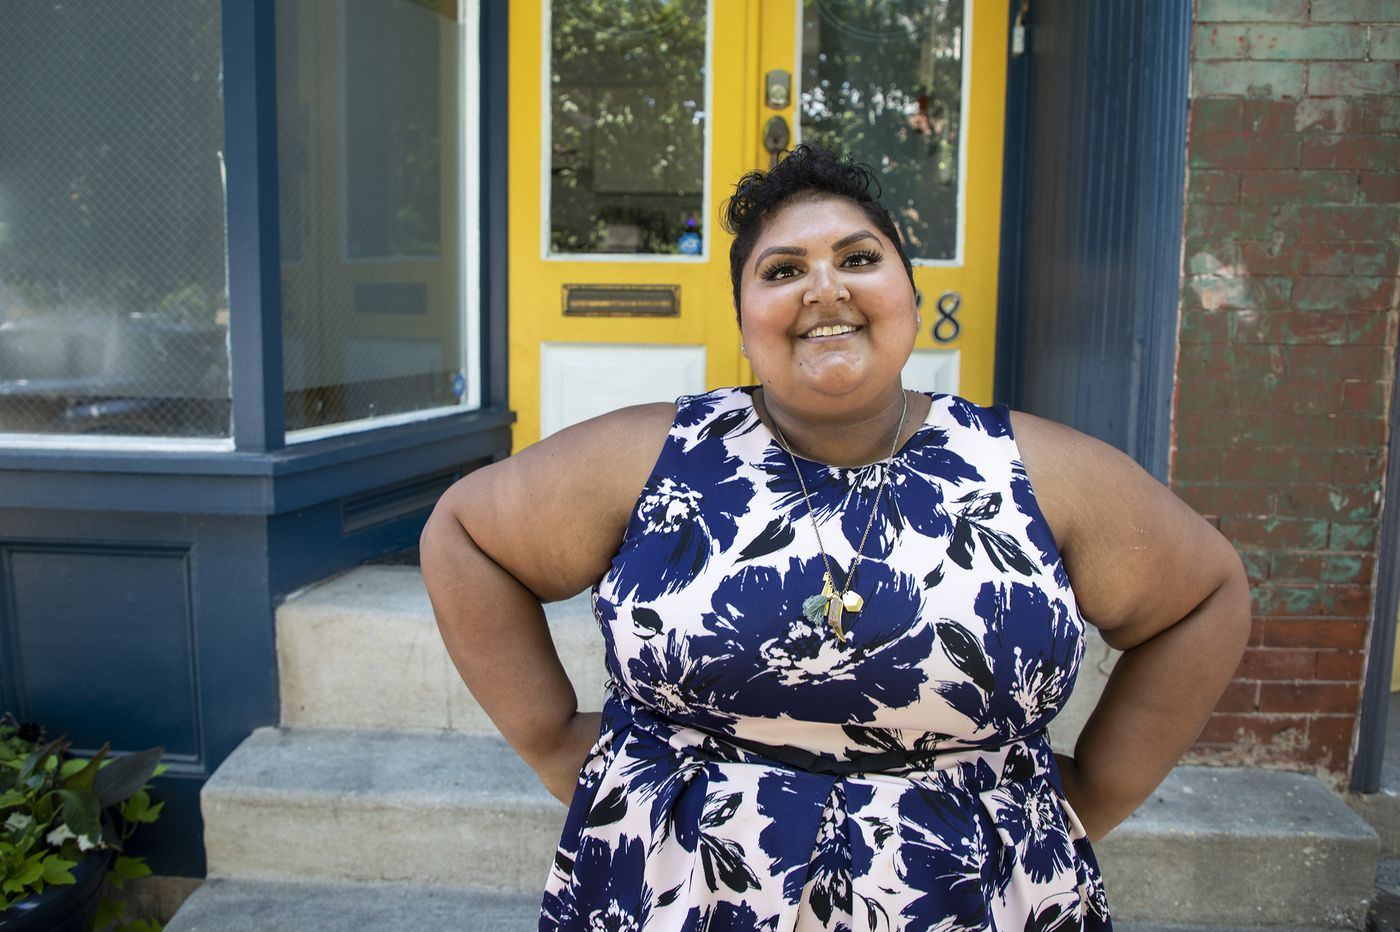 To end fatphobia, we need to dismantle Western civilization, says Philly therapist Sonalee Rashatwar